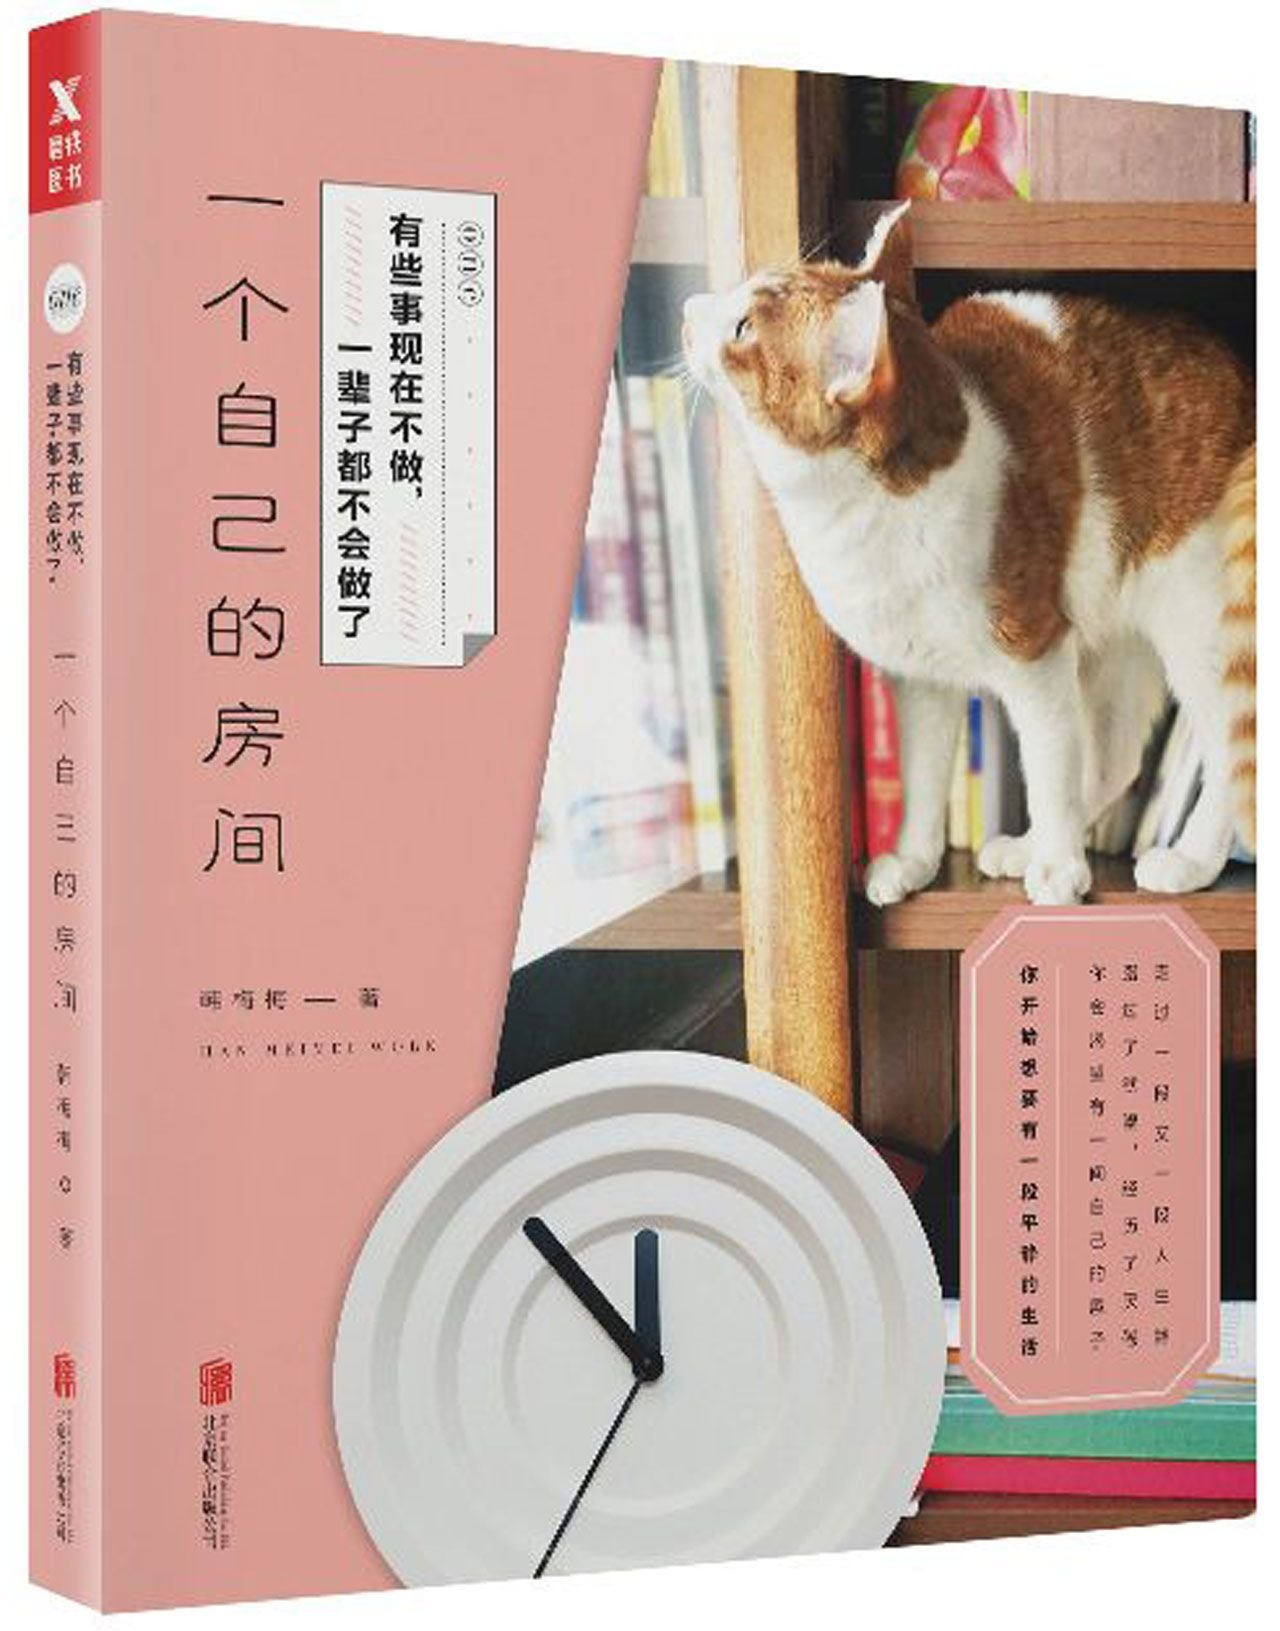 Read Online The Room of Your Own (Chinese Edition) PDF